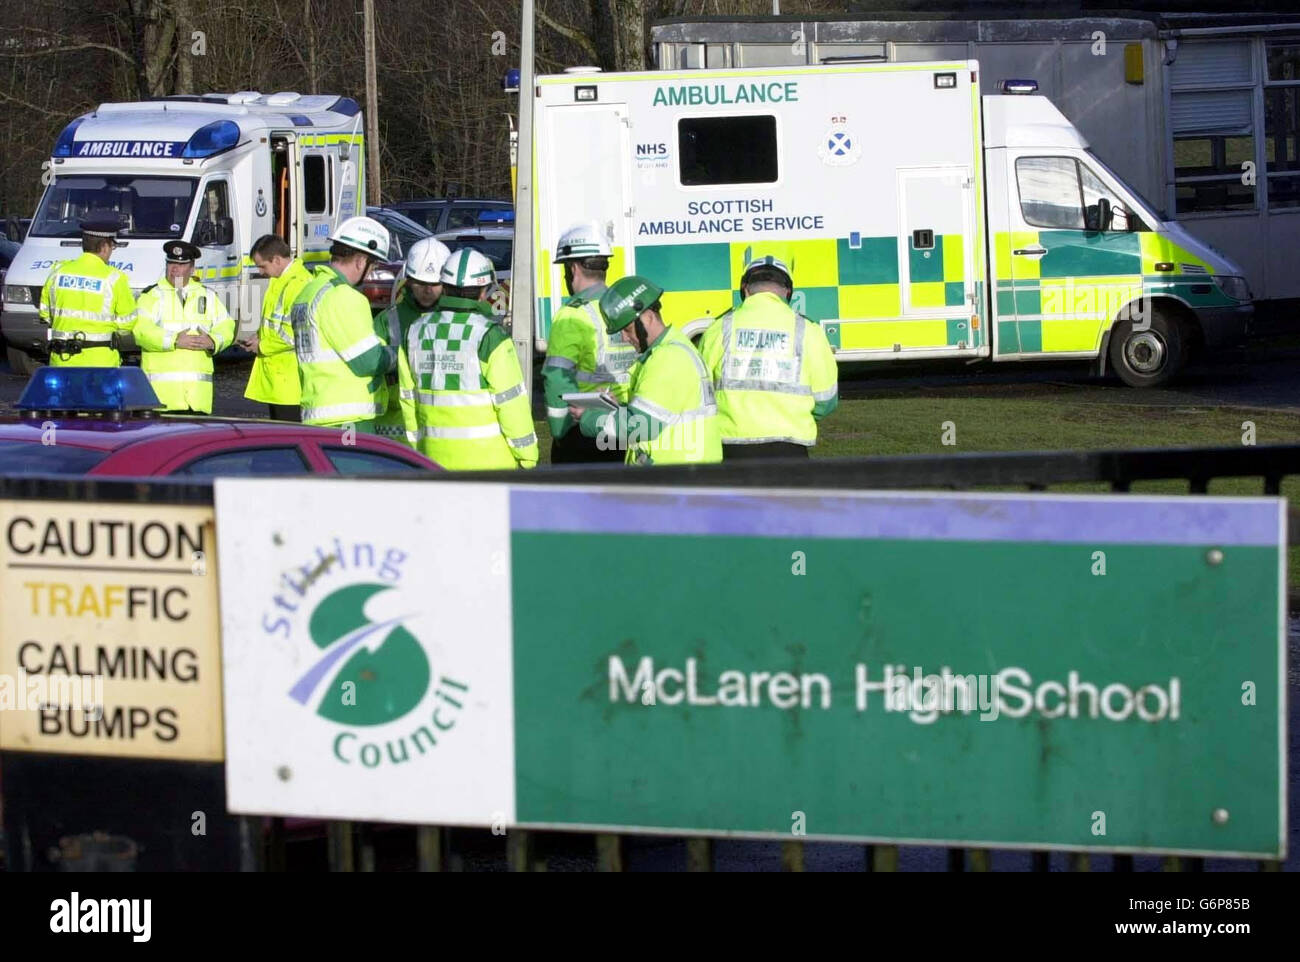 Mclaren High School >> Ambulance Crew Outside Mclaren High School In Callander